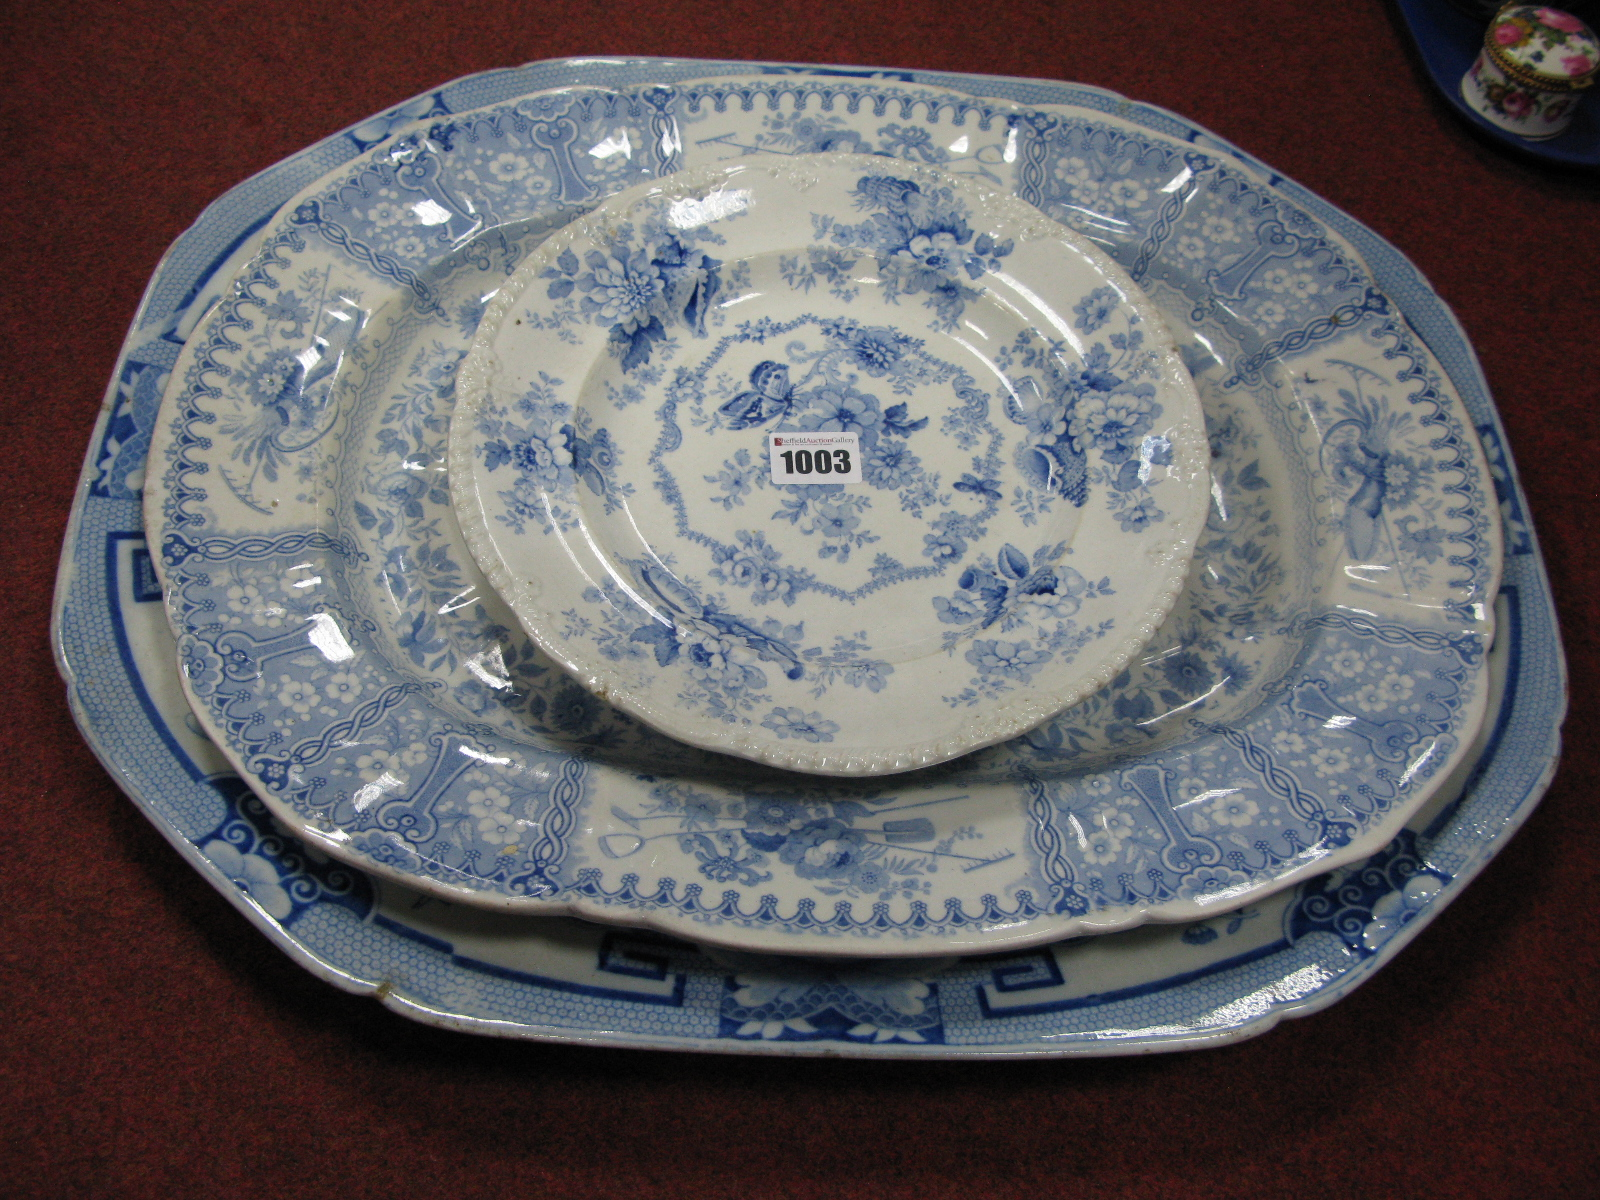 Lot 1003 - A Mason's Ironstone China Meat Dish, with well, of shaped rectangular form printed in blue with